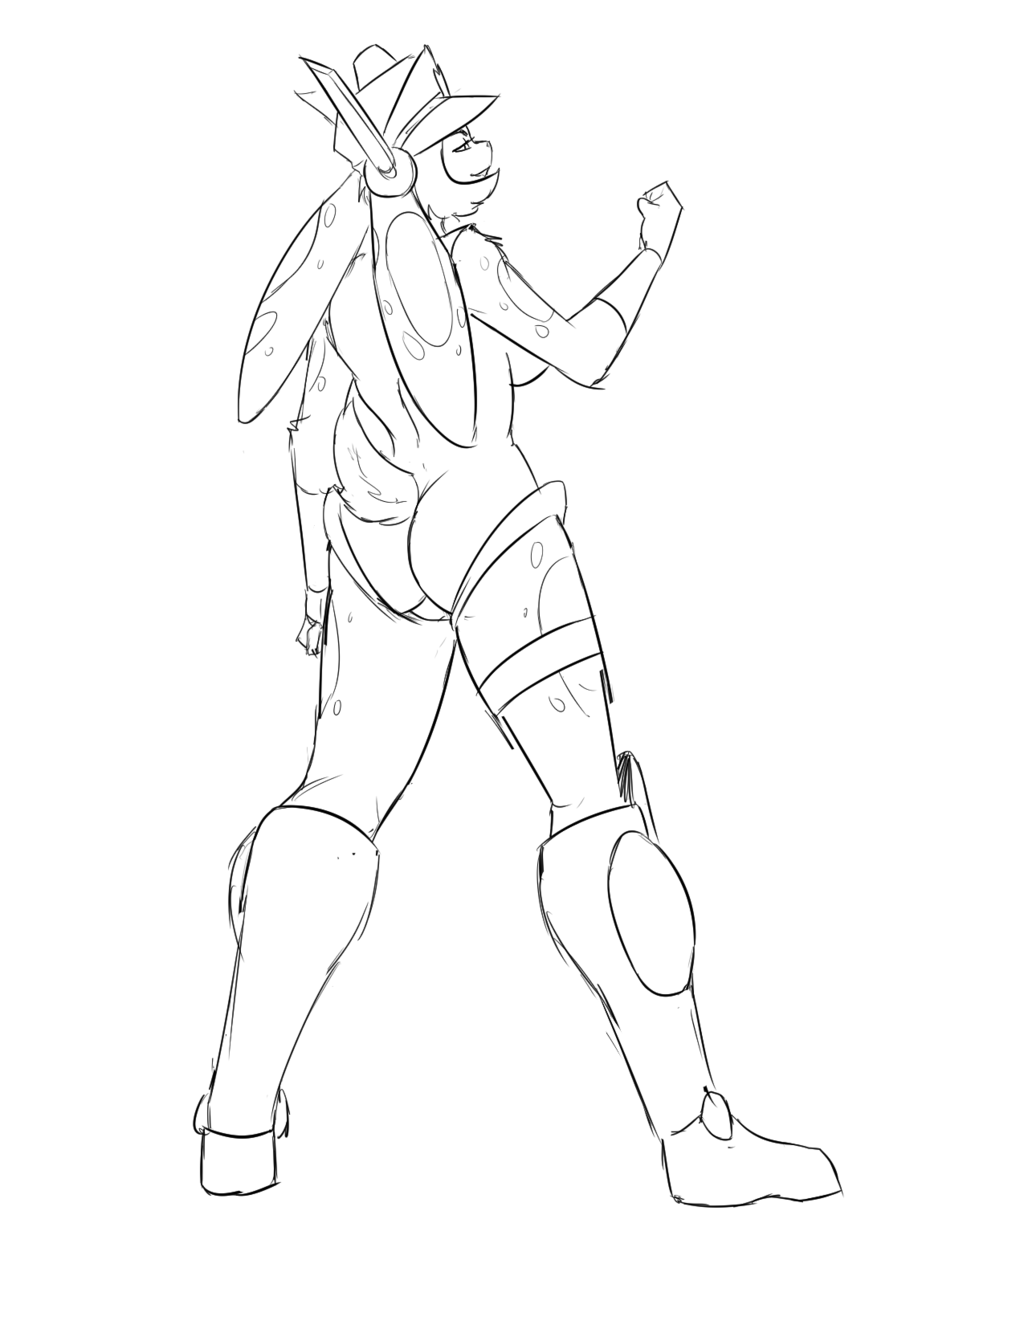 TangoBunny Mighty Switch Force outfit!